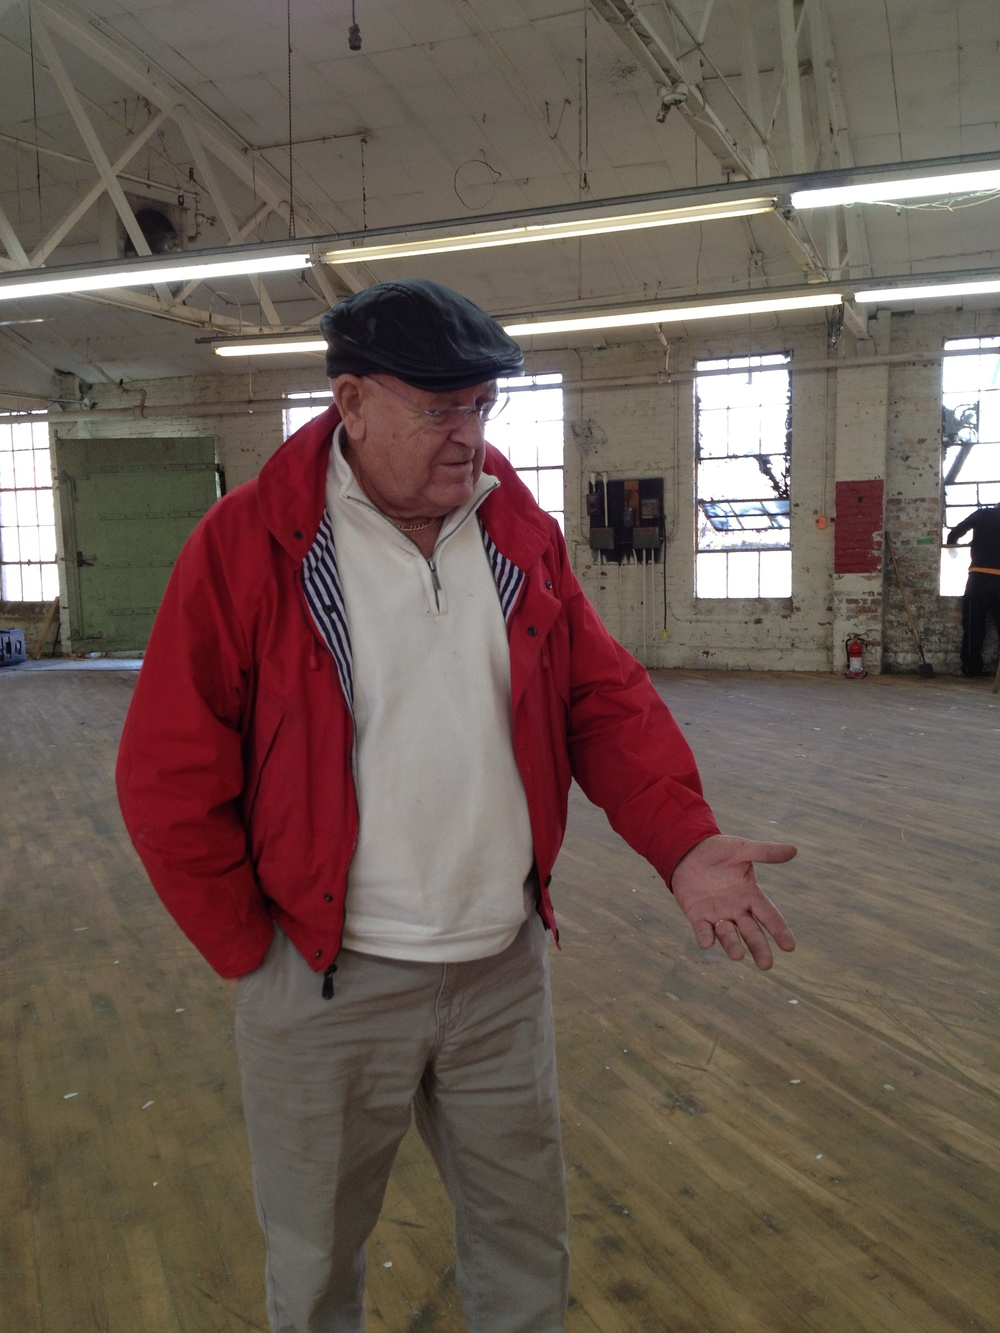 Pop enjoying the new old space at Rail Yard Studios